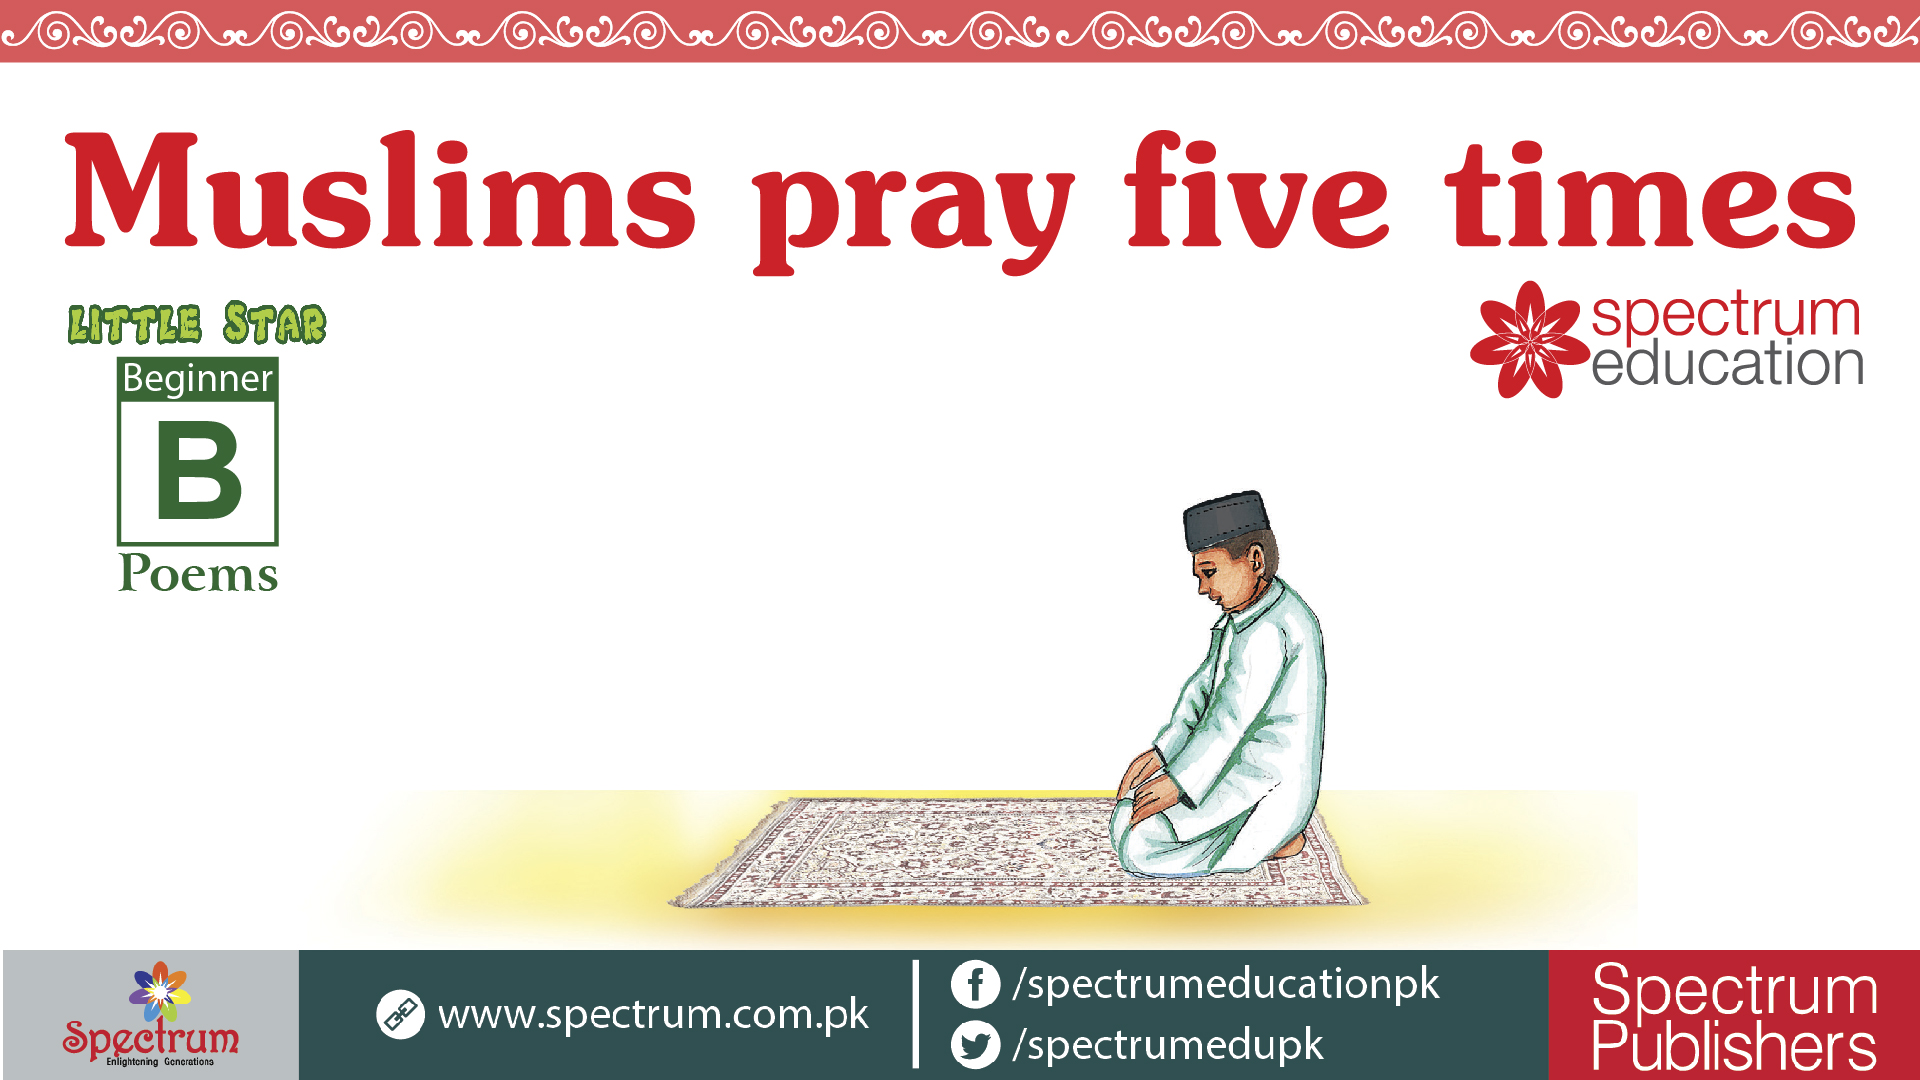 Muslims pray five times